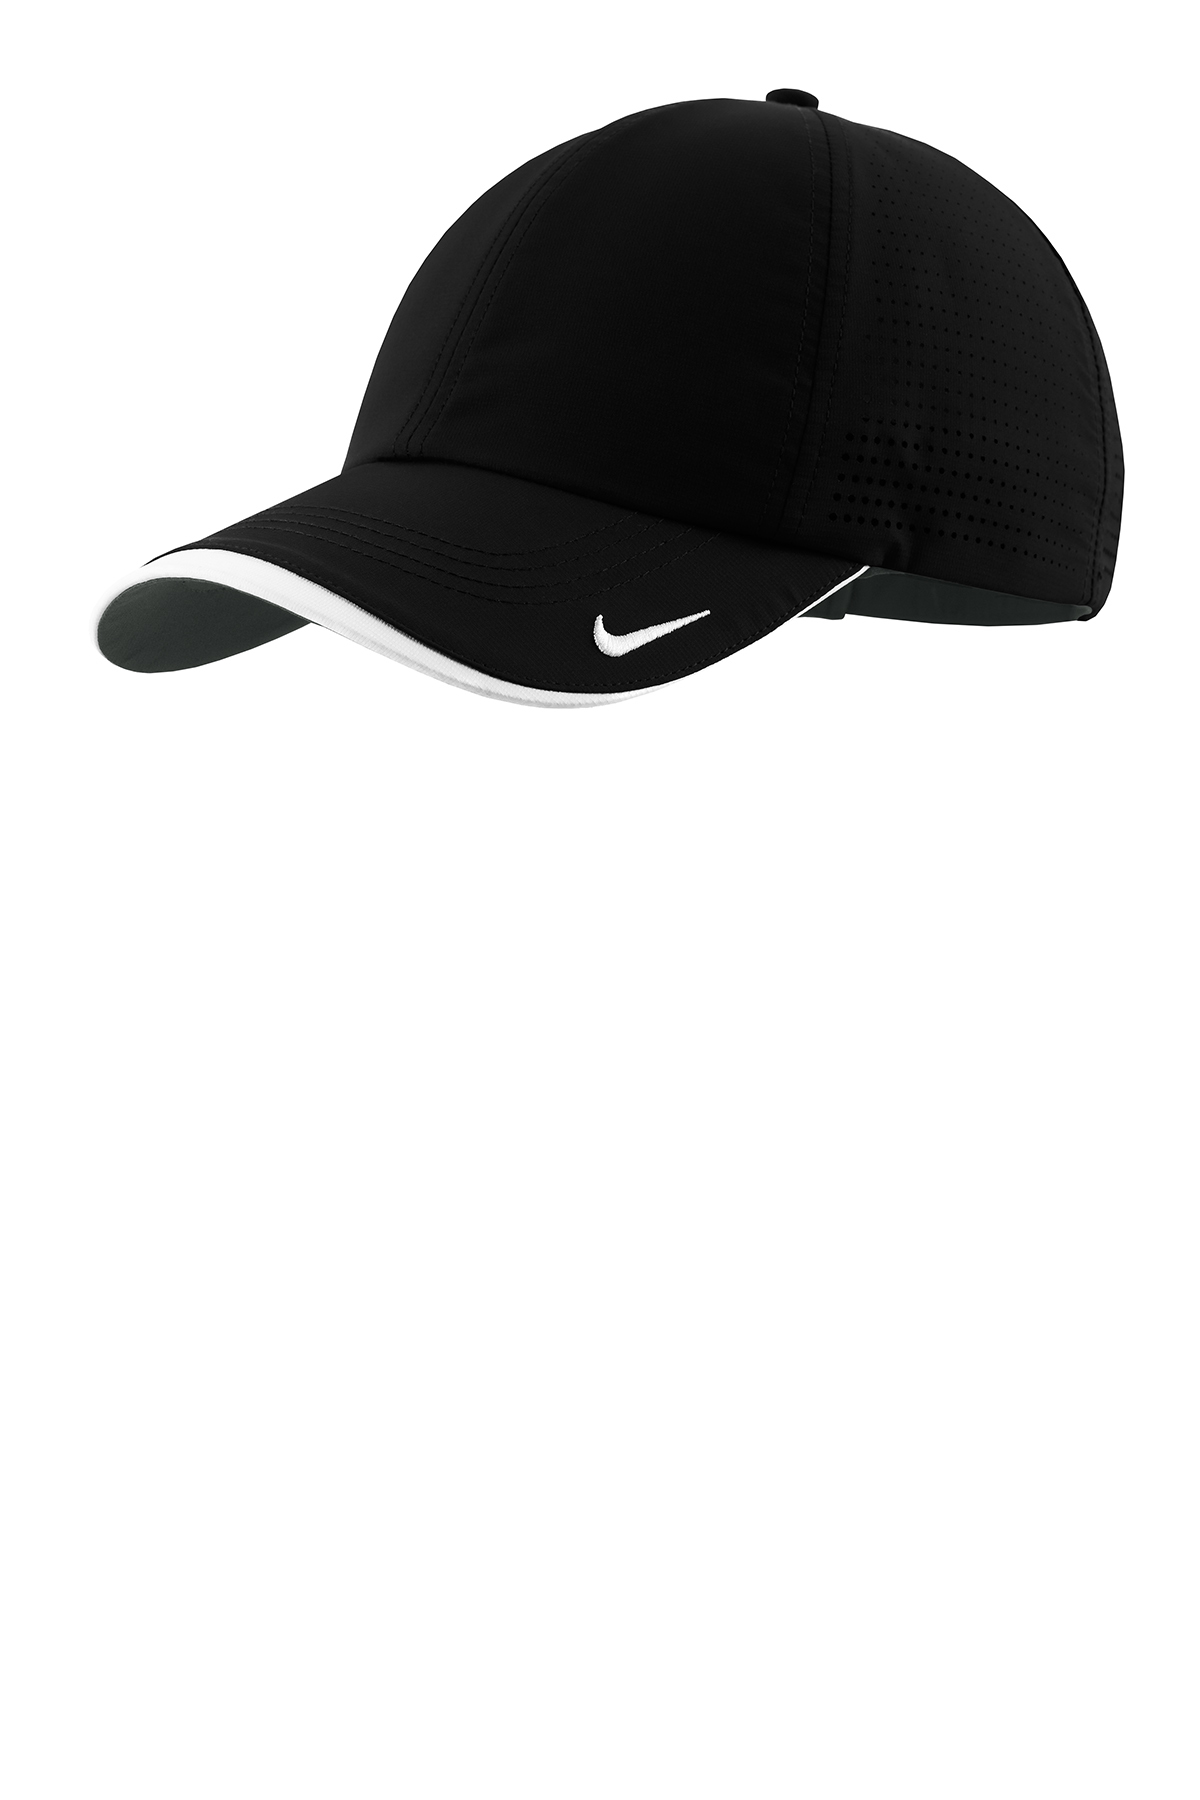 c91686996e8 Nike Dri-FIT Swoosh Perforated Cap